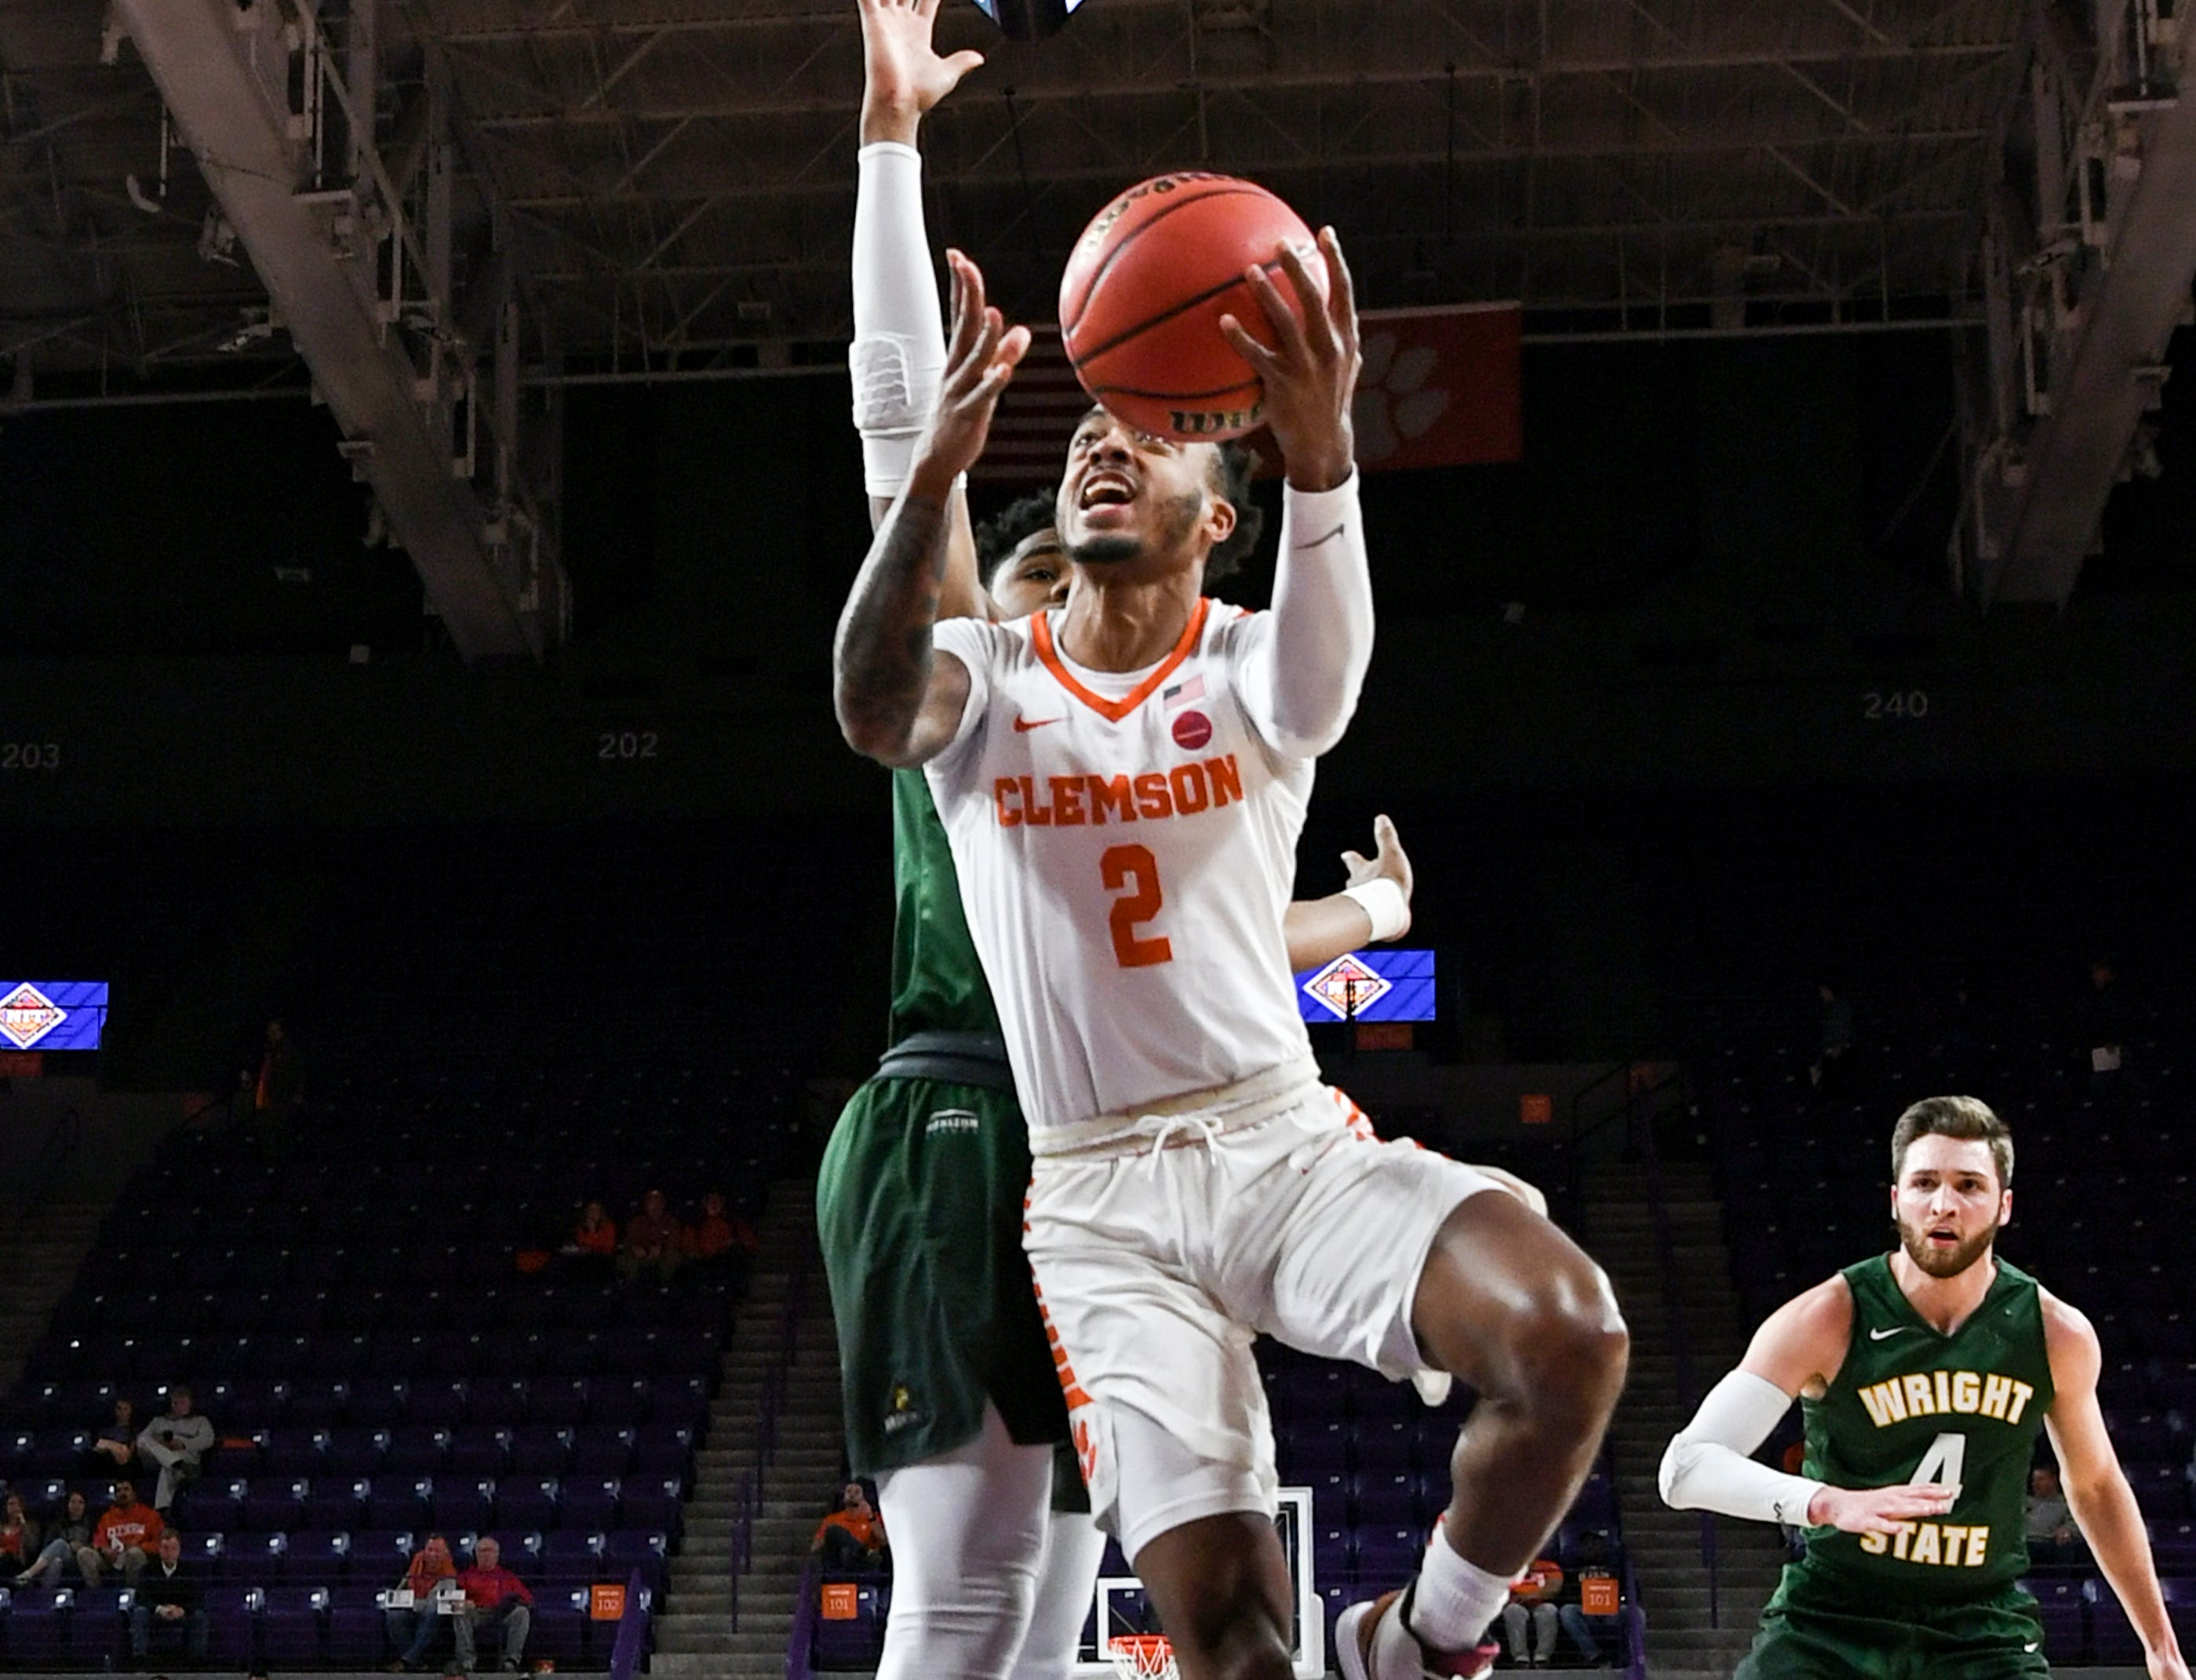 Clemson guard Marcquise Reed (2) shoots near Wright State guard Alan Vest(4) during the first half of the NIT at Littlejohn Coliseum in Clemson Tuesday, March 19, 2019.